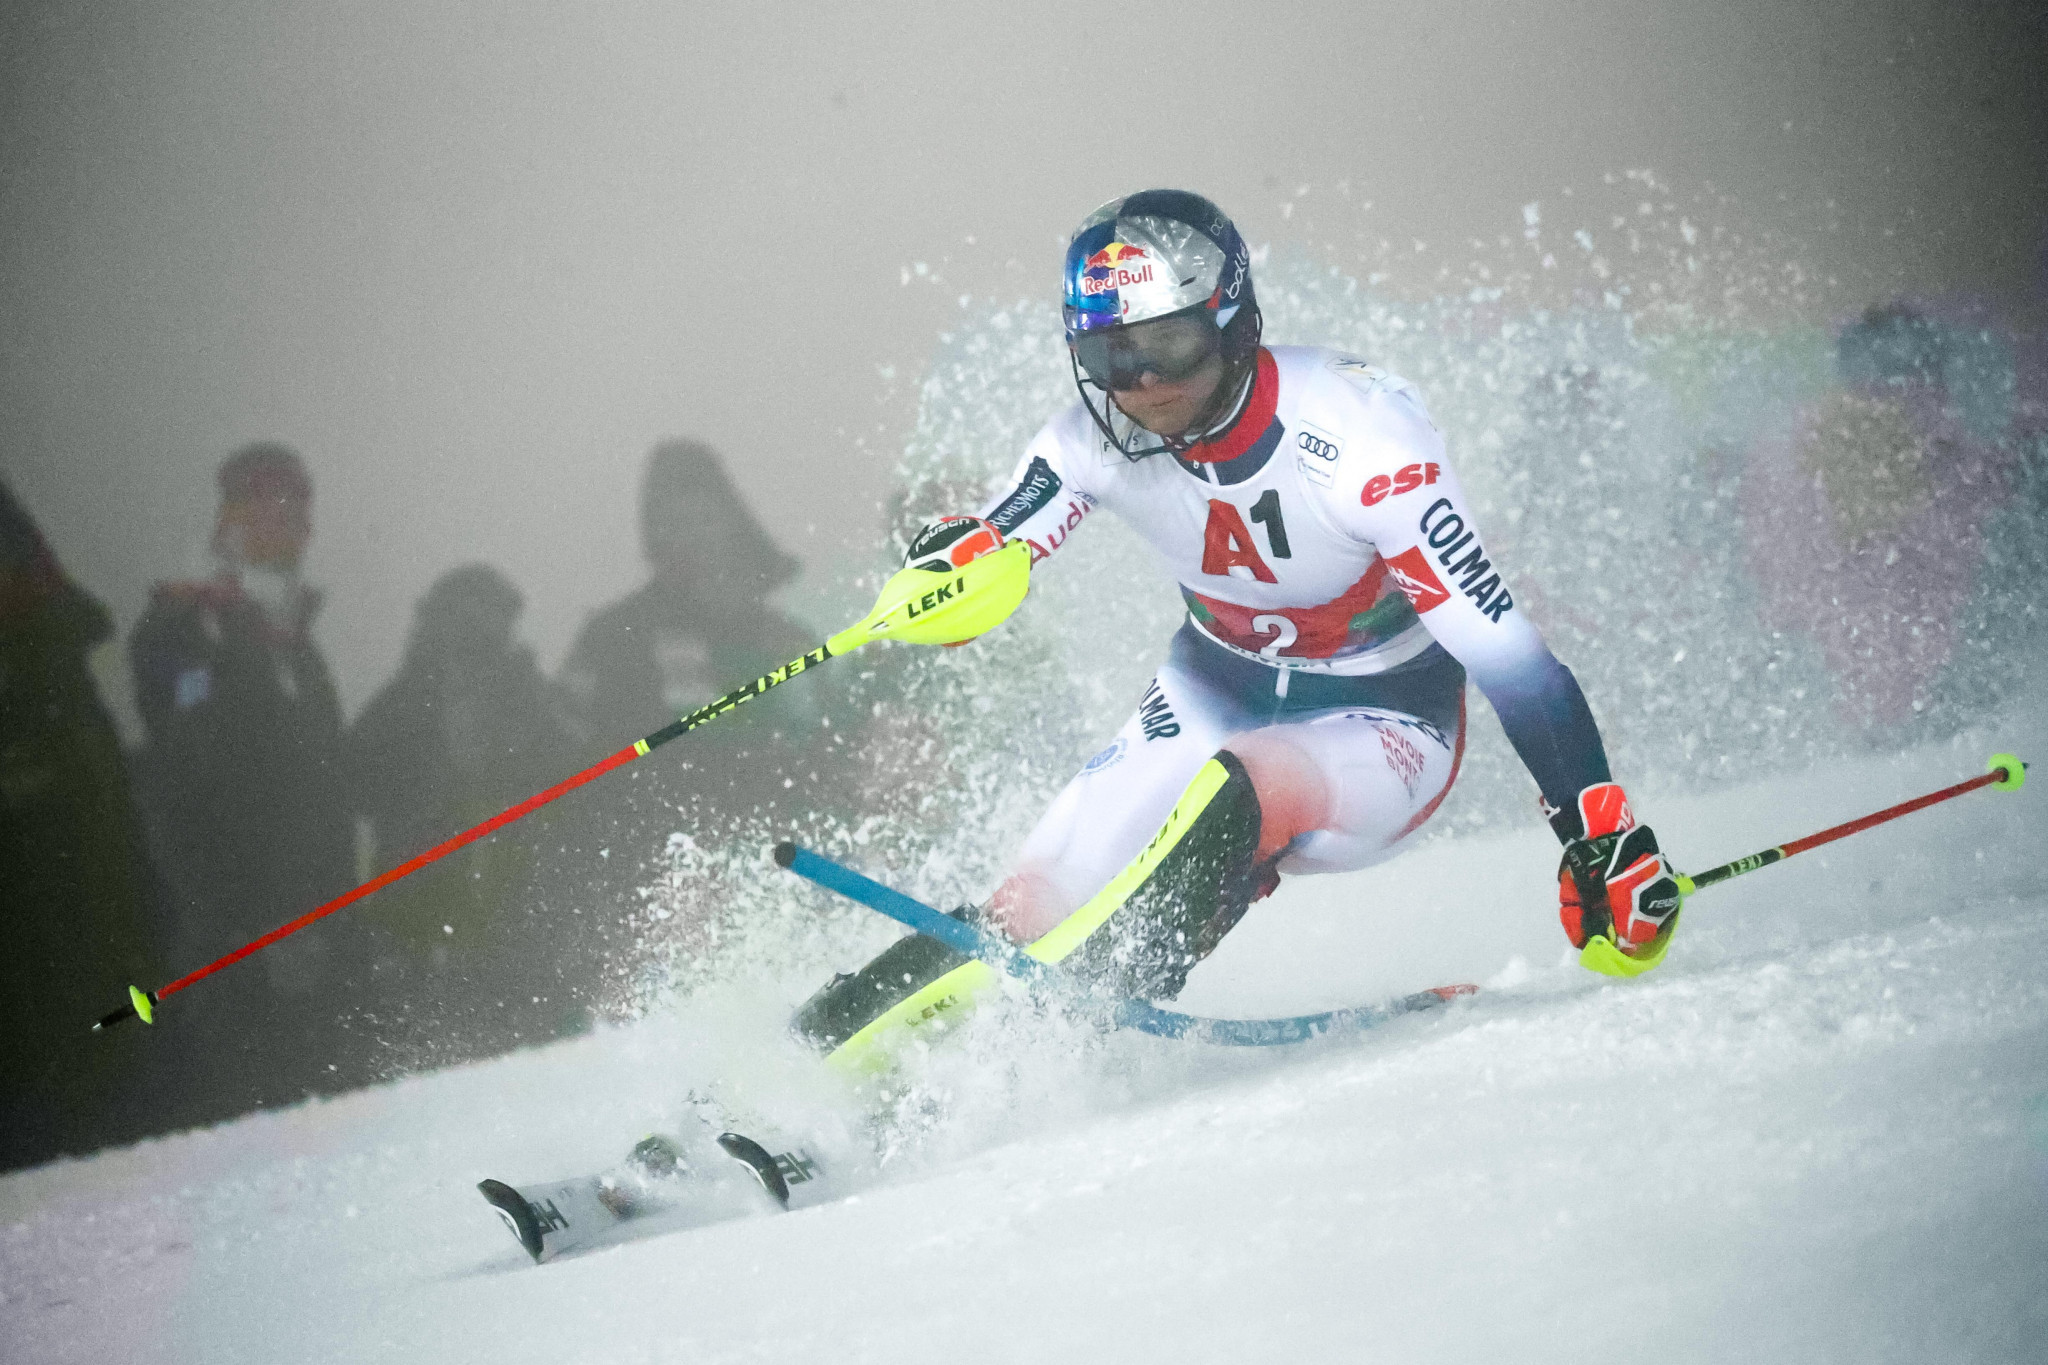 France's Alexis Pinturault was the runner-up ©Getty Images